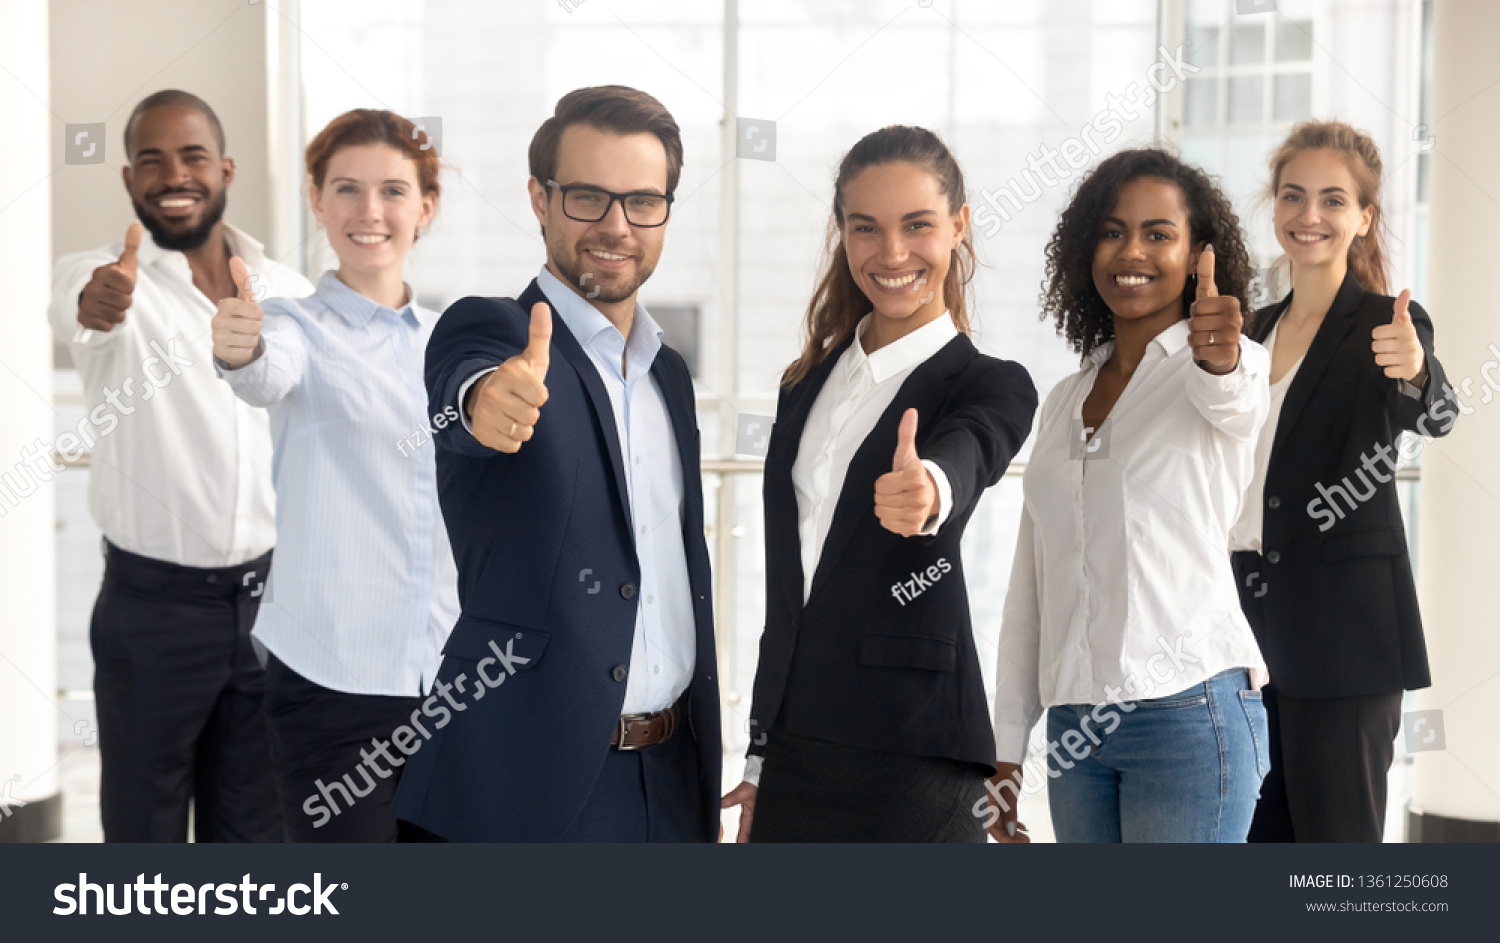 Business leaders with employees group showing thumbs up looking at camera, happy professional multicultural office team people recommend best corporate service, proud or good career, human resource #1361250608